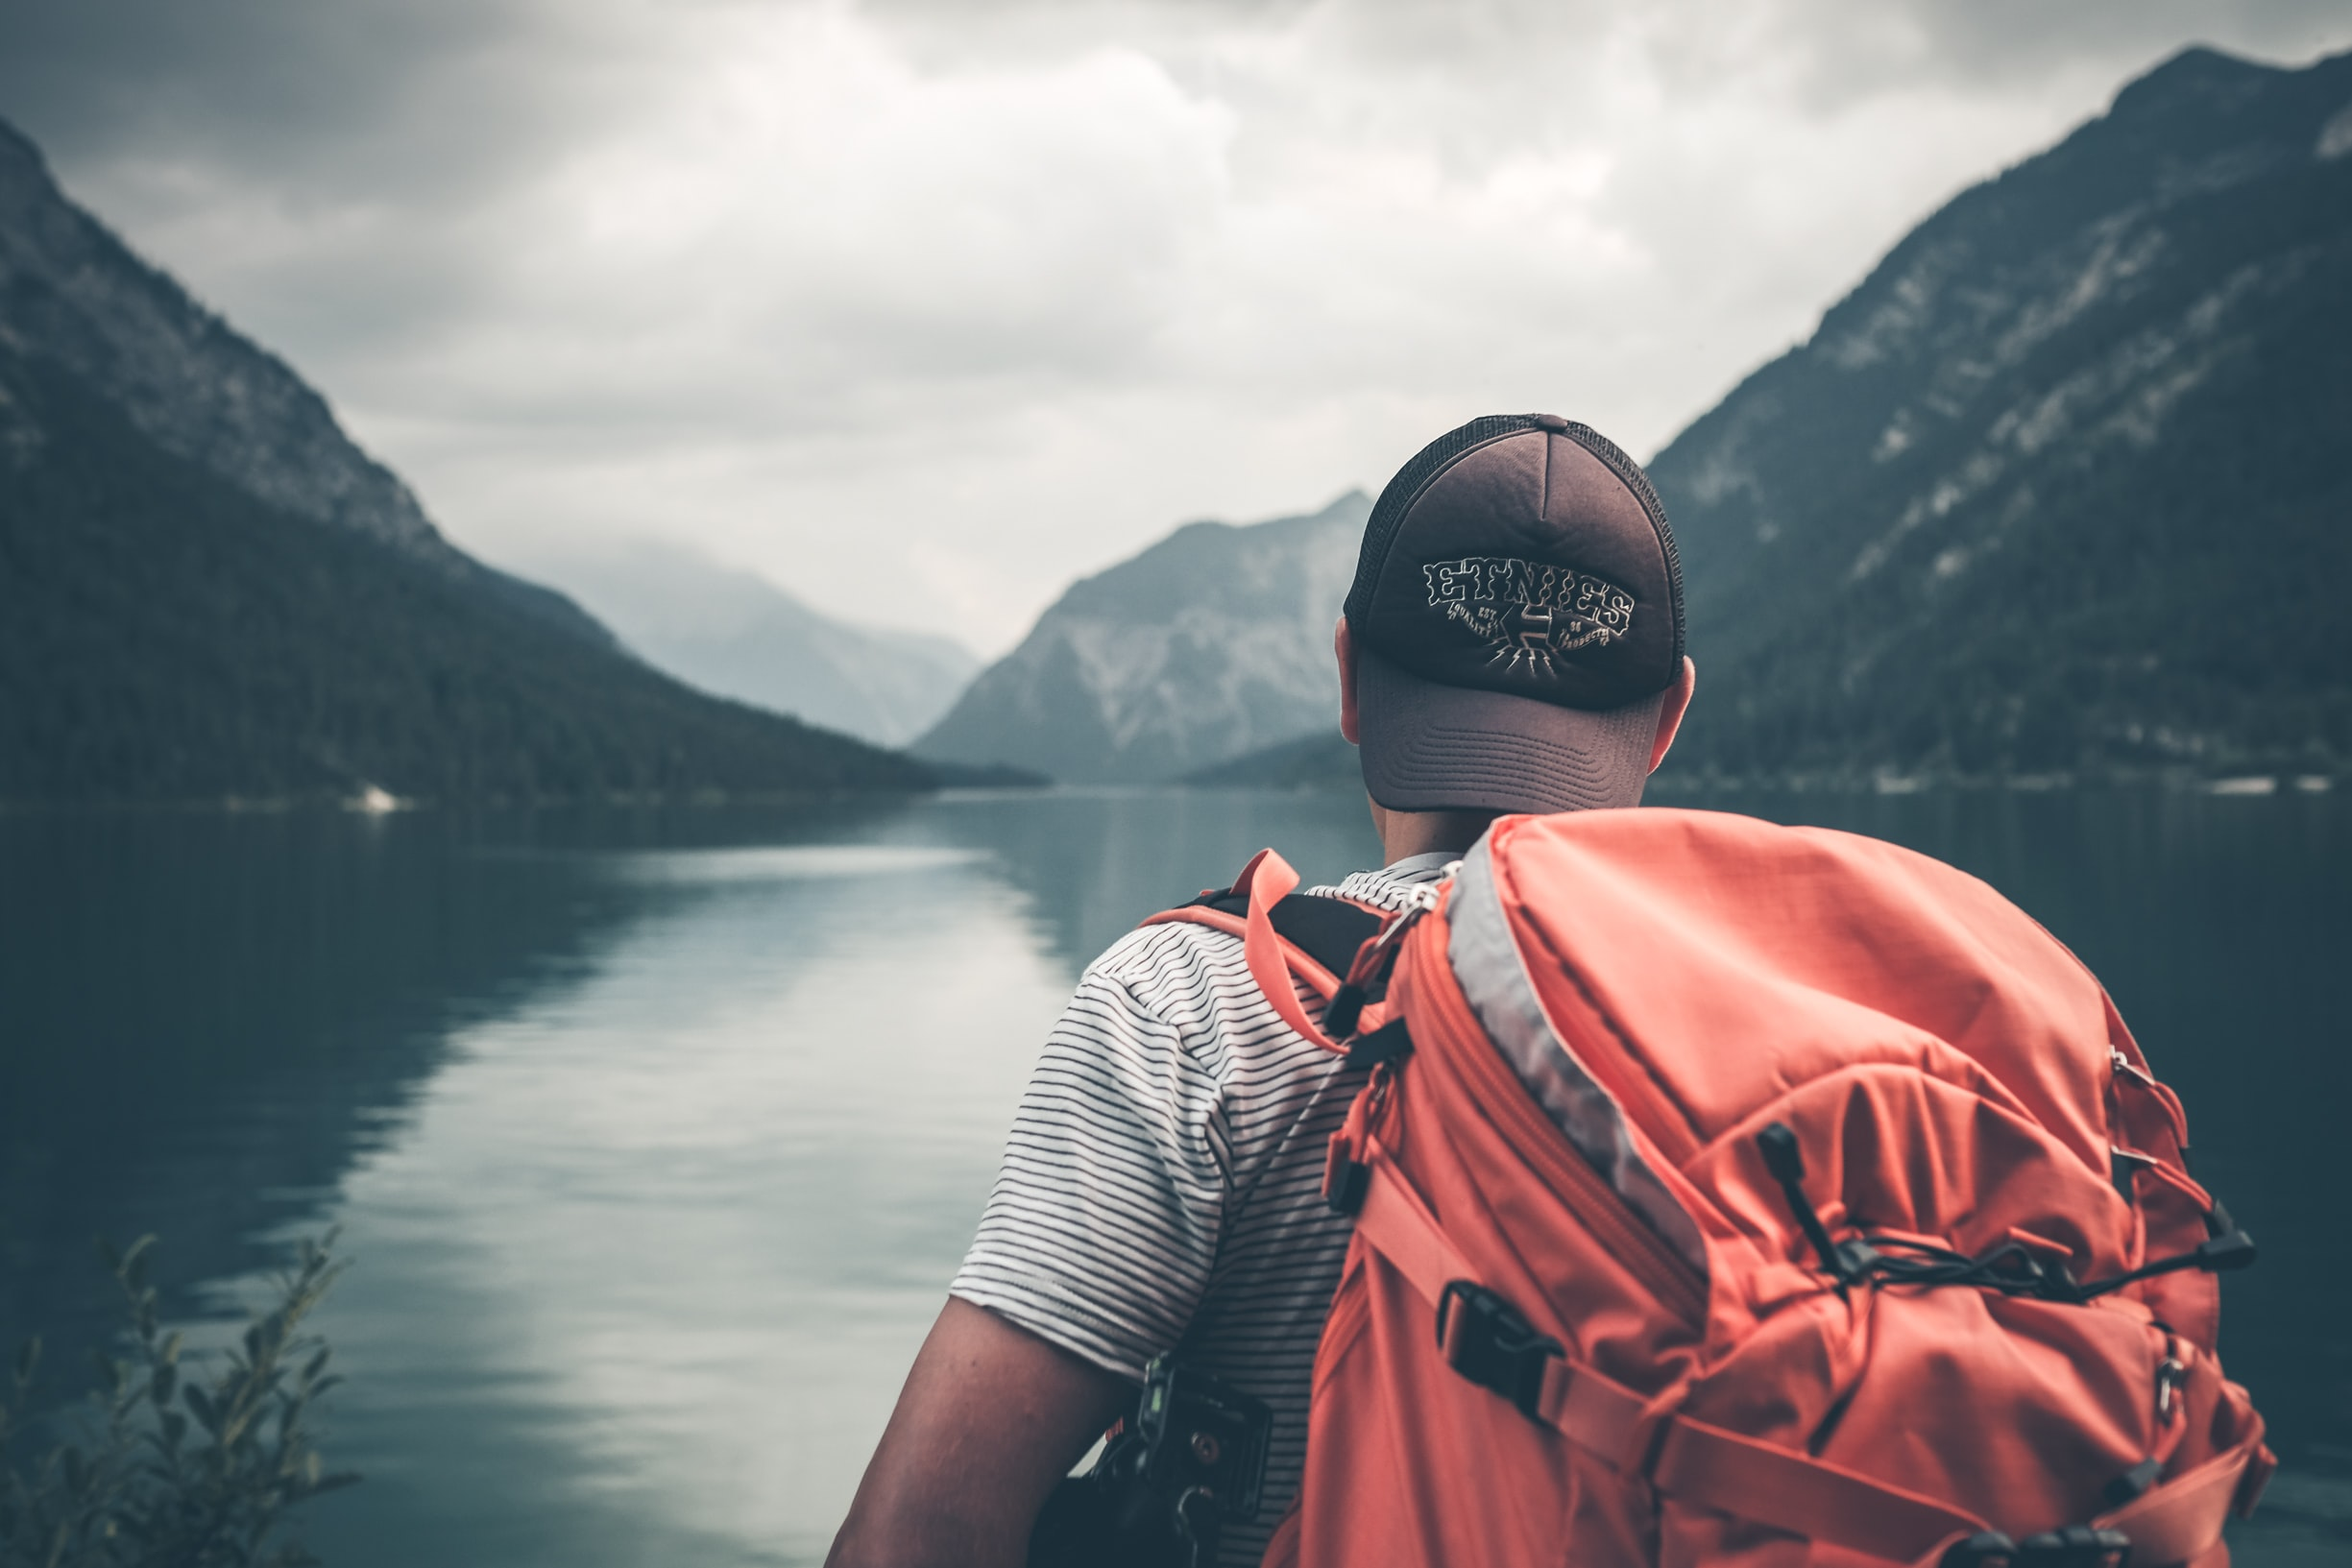 Hiker with a heavy backpack looking out at mountains and still water